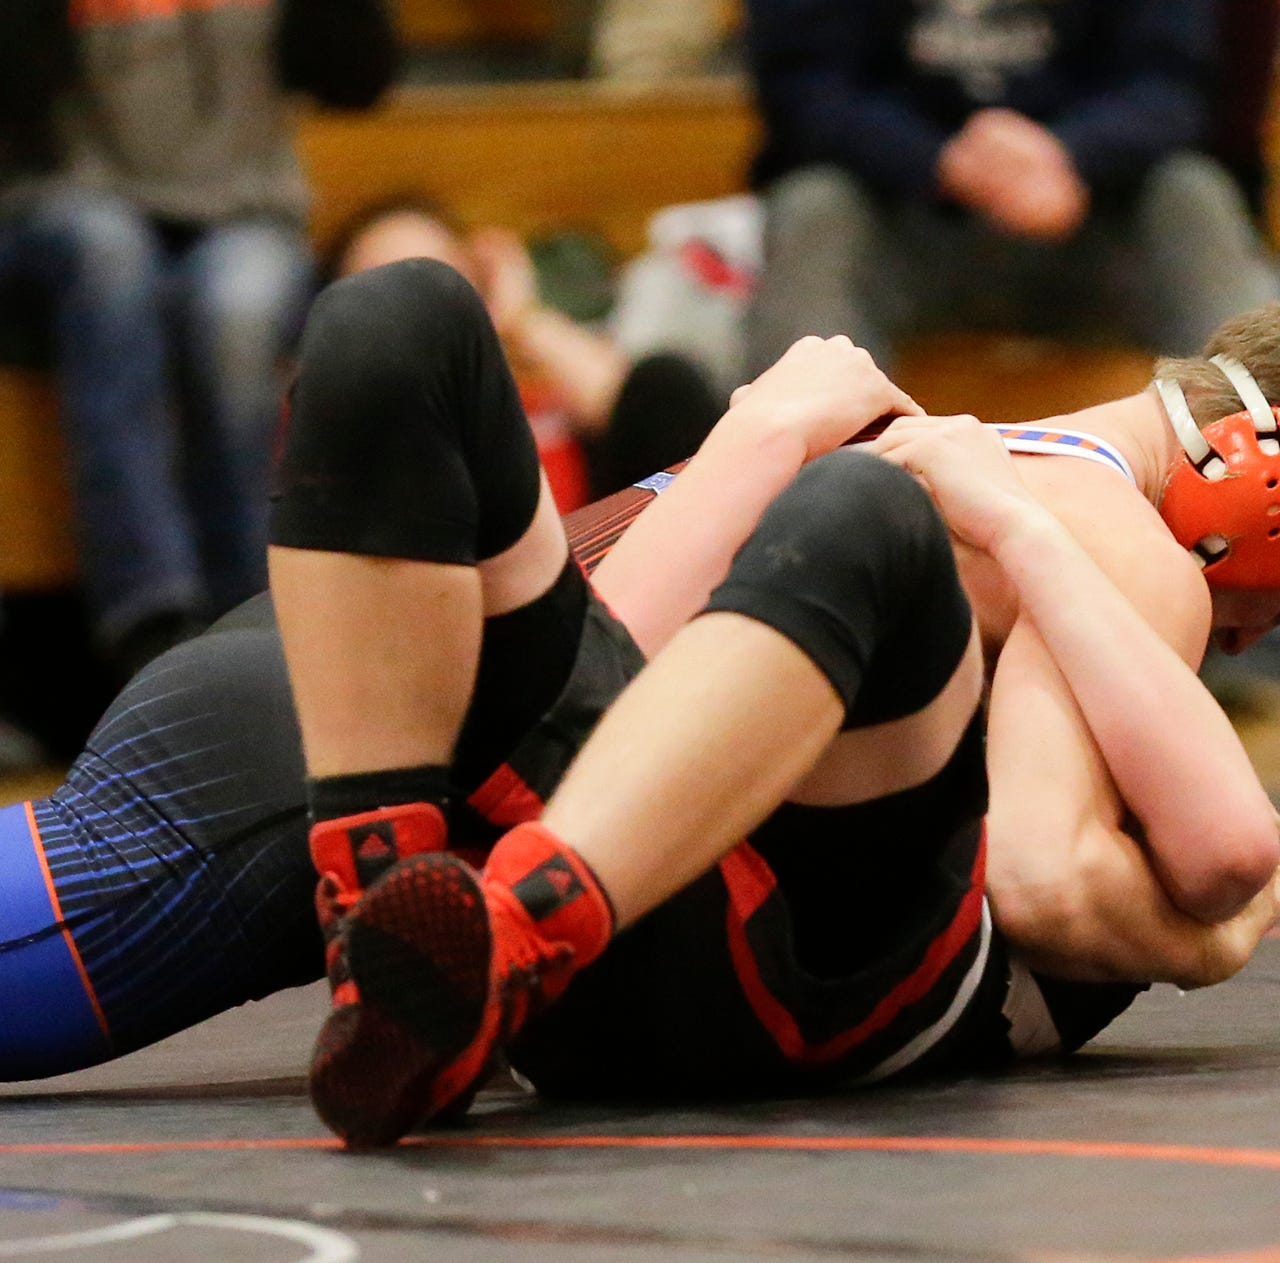 North Fond du Lac/St. Mary's Springs wrestlers hope to build on regional success